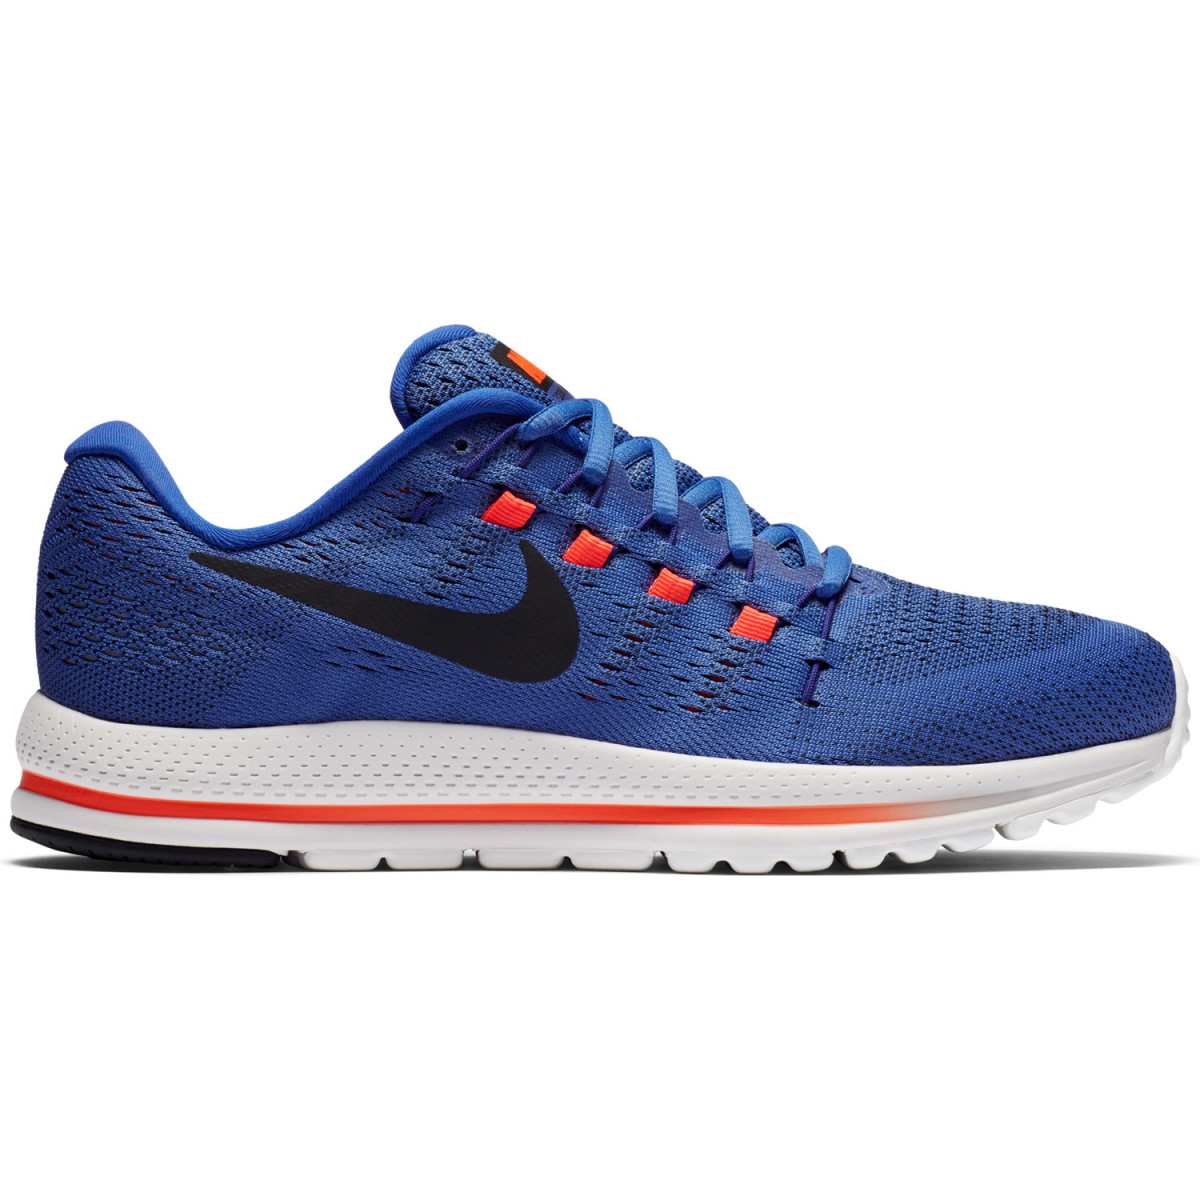 Zapatillas Nike Air Zoom Vomero 12